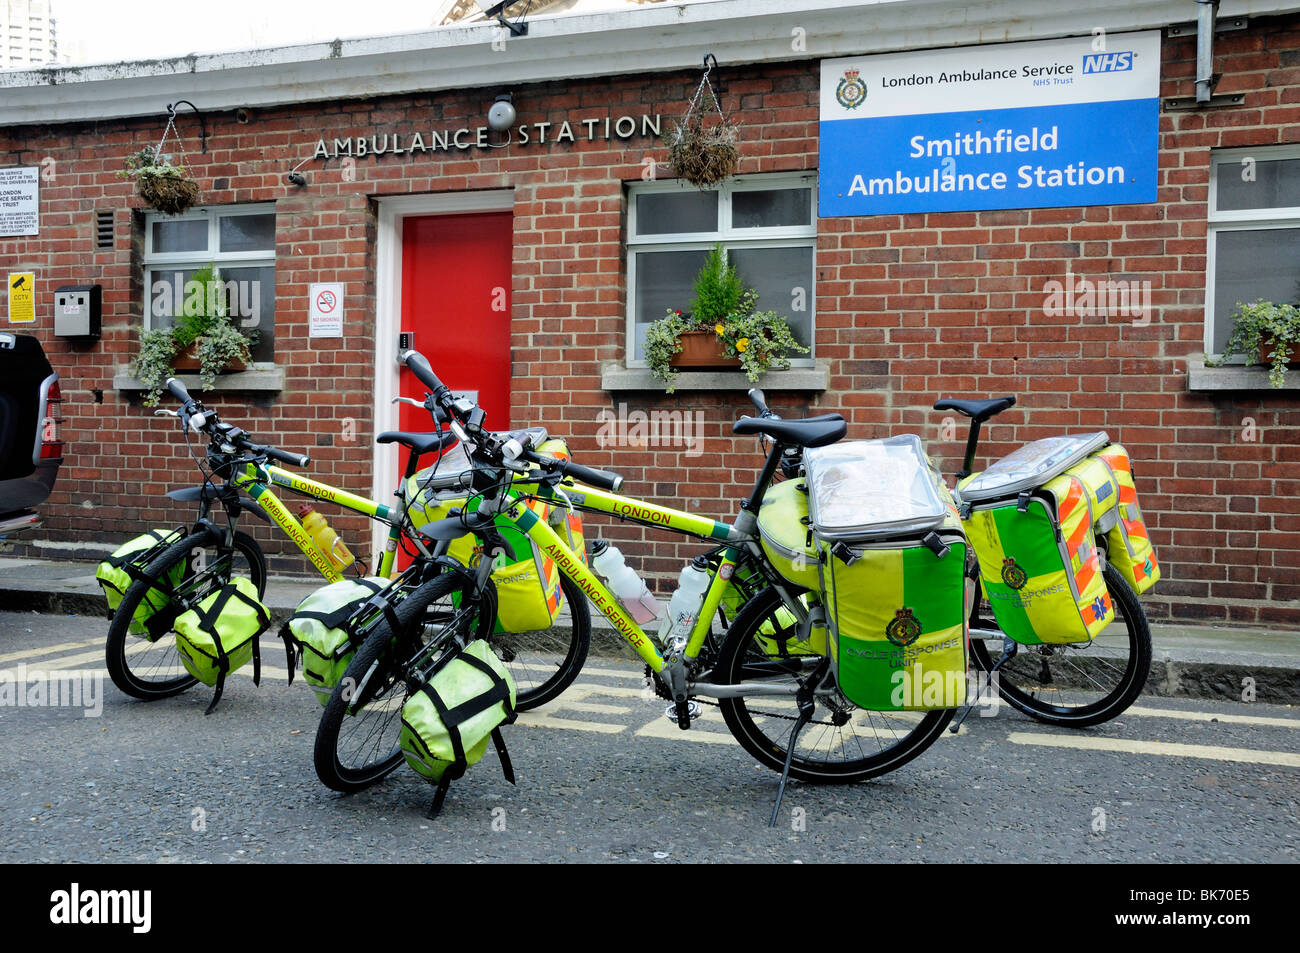 Réponse du cycle du paramédic Smithfield Station vélos unité Ambulance London England UK Photo Stock